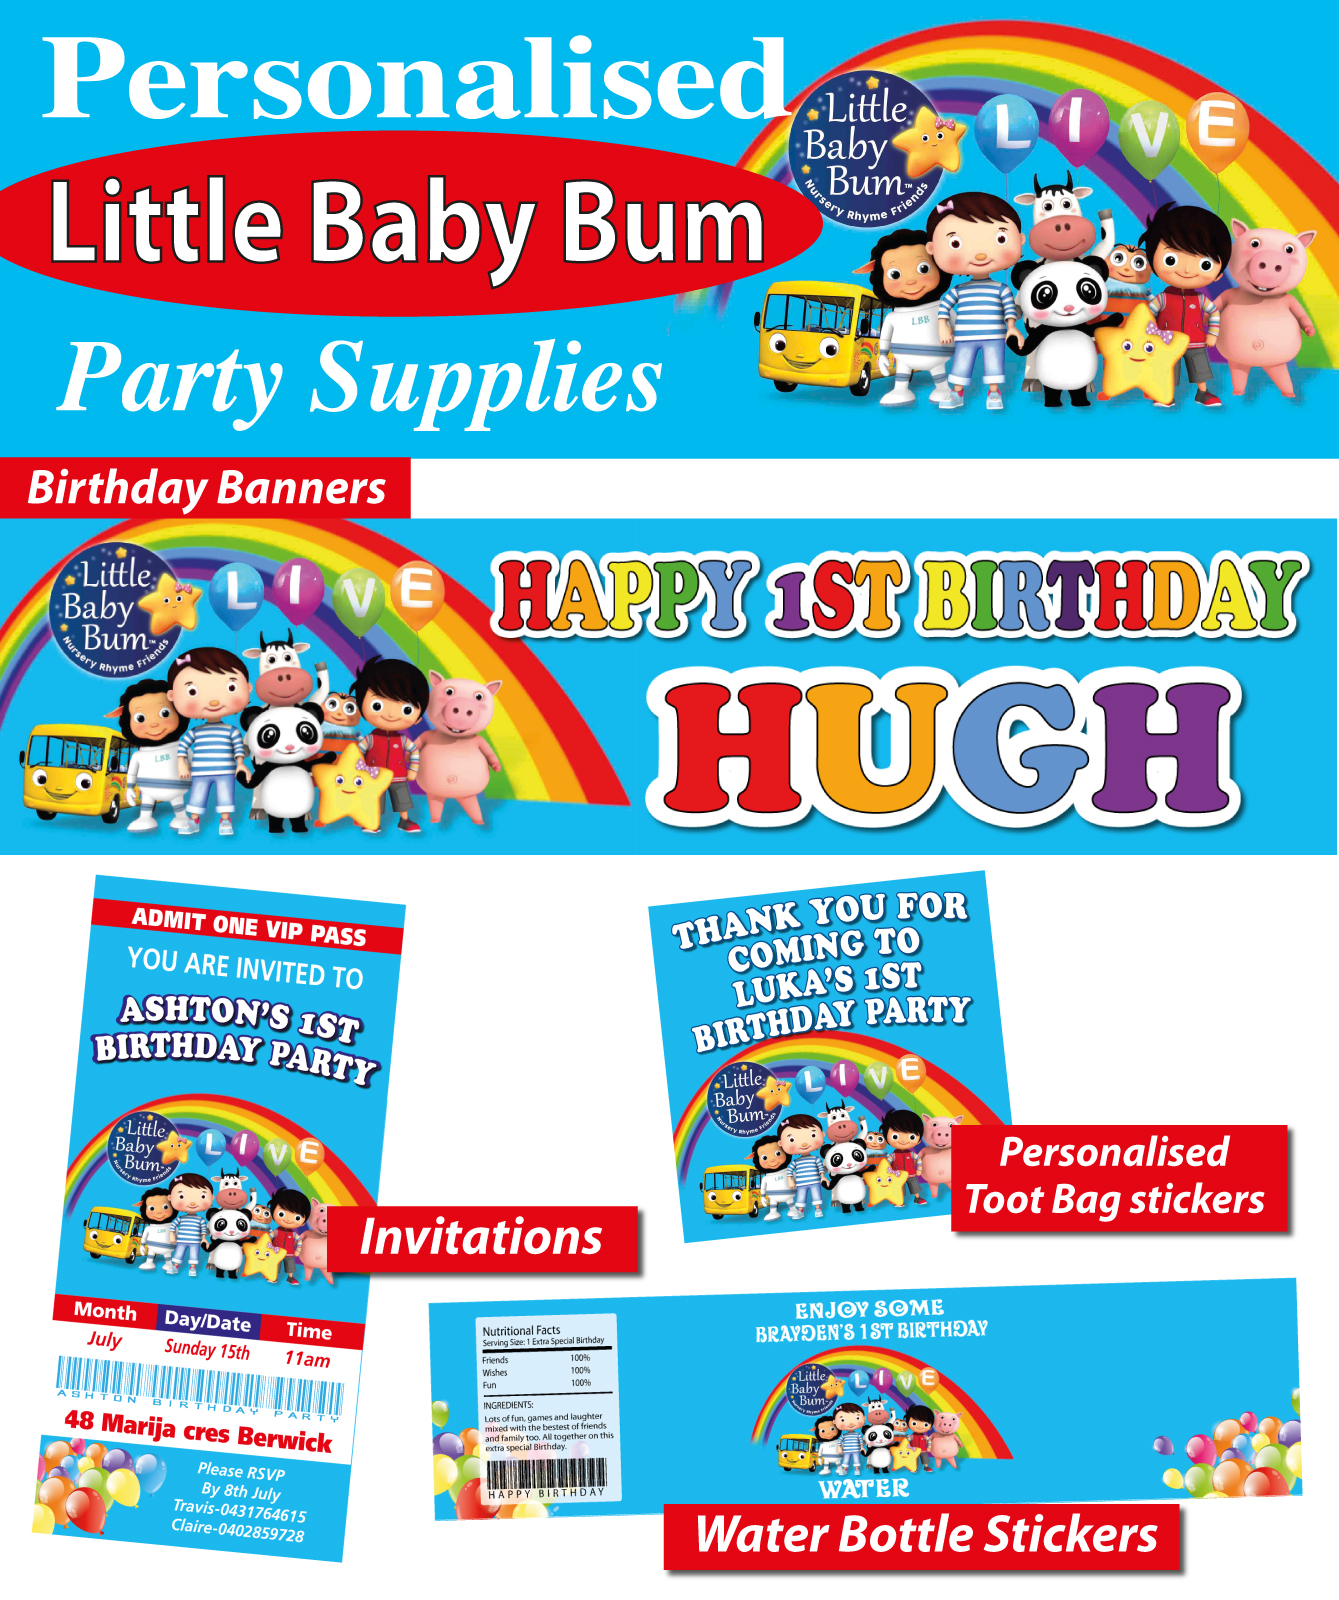 little-baby-bum-ebay.jpg